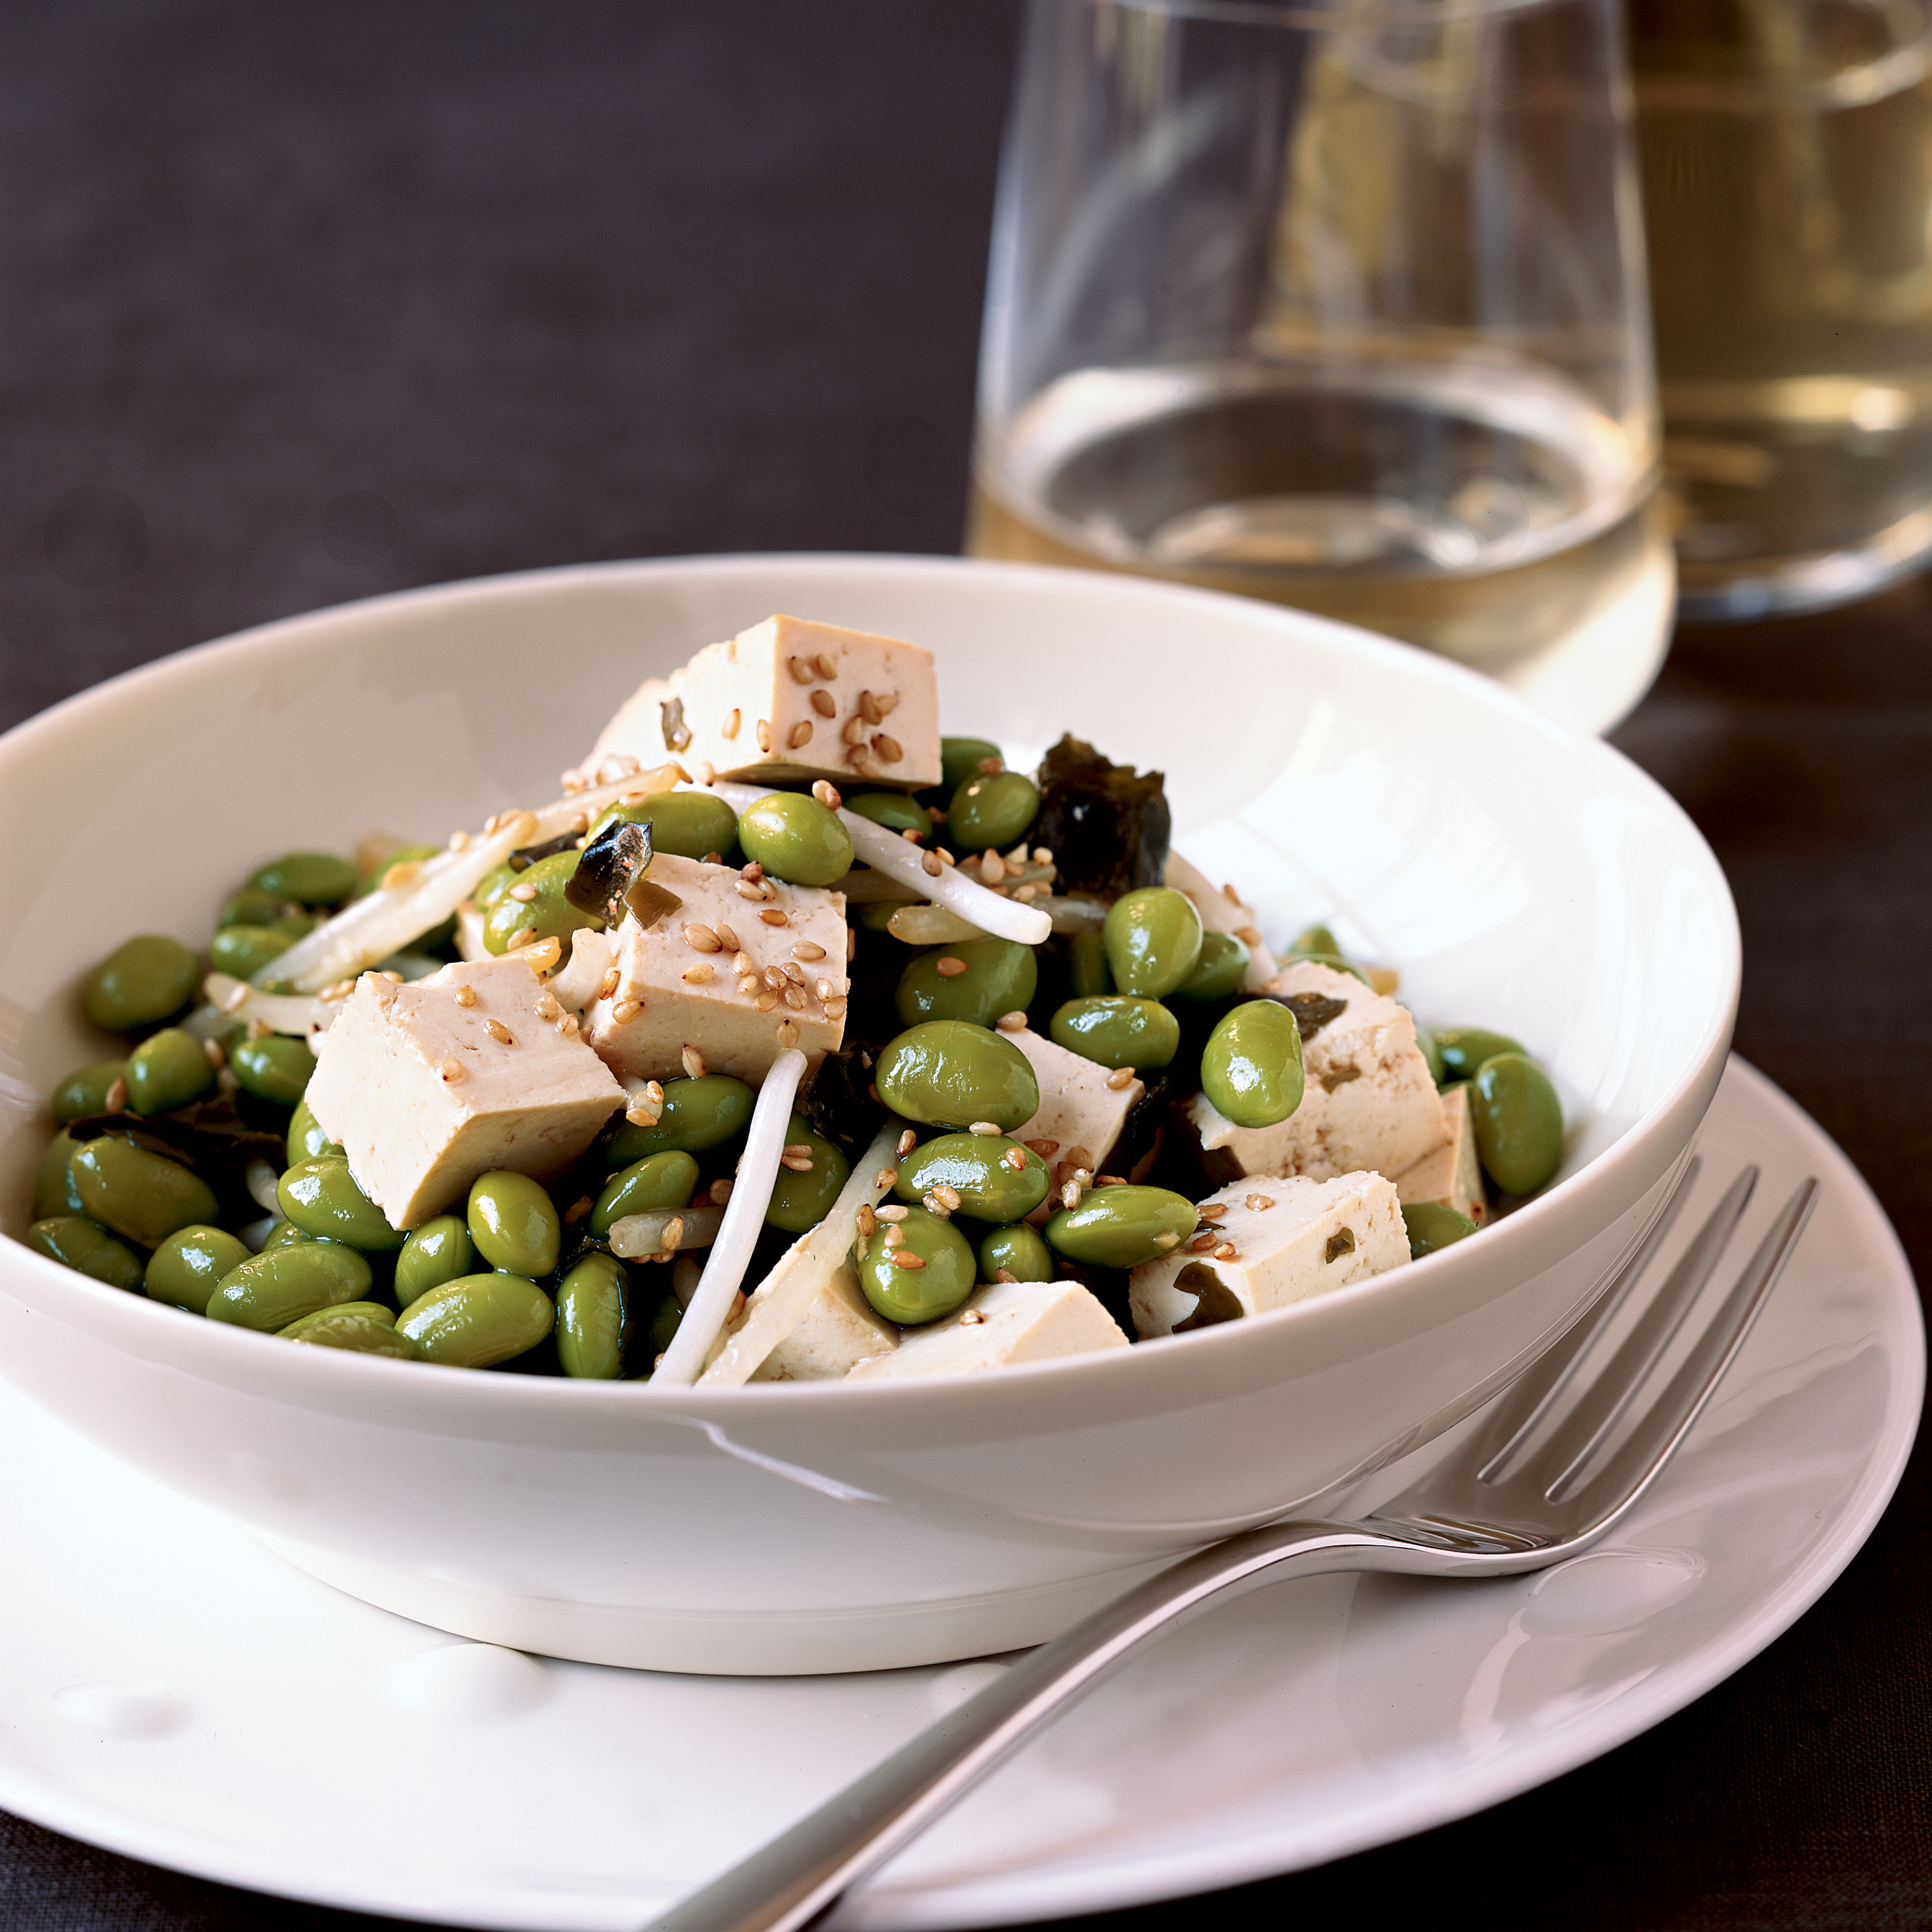 All About Amazoncom Edamame Beans 500gr With Tofu Bean Sprouts And Seaweed Recipe Grace